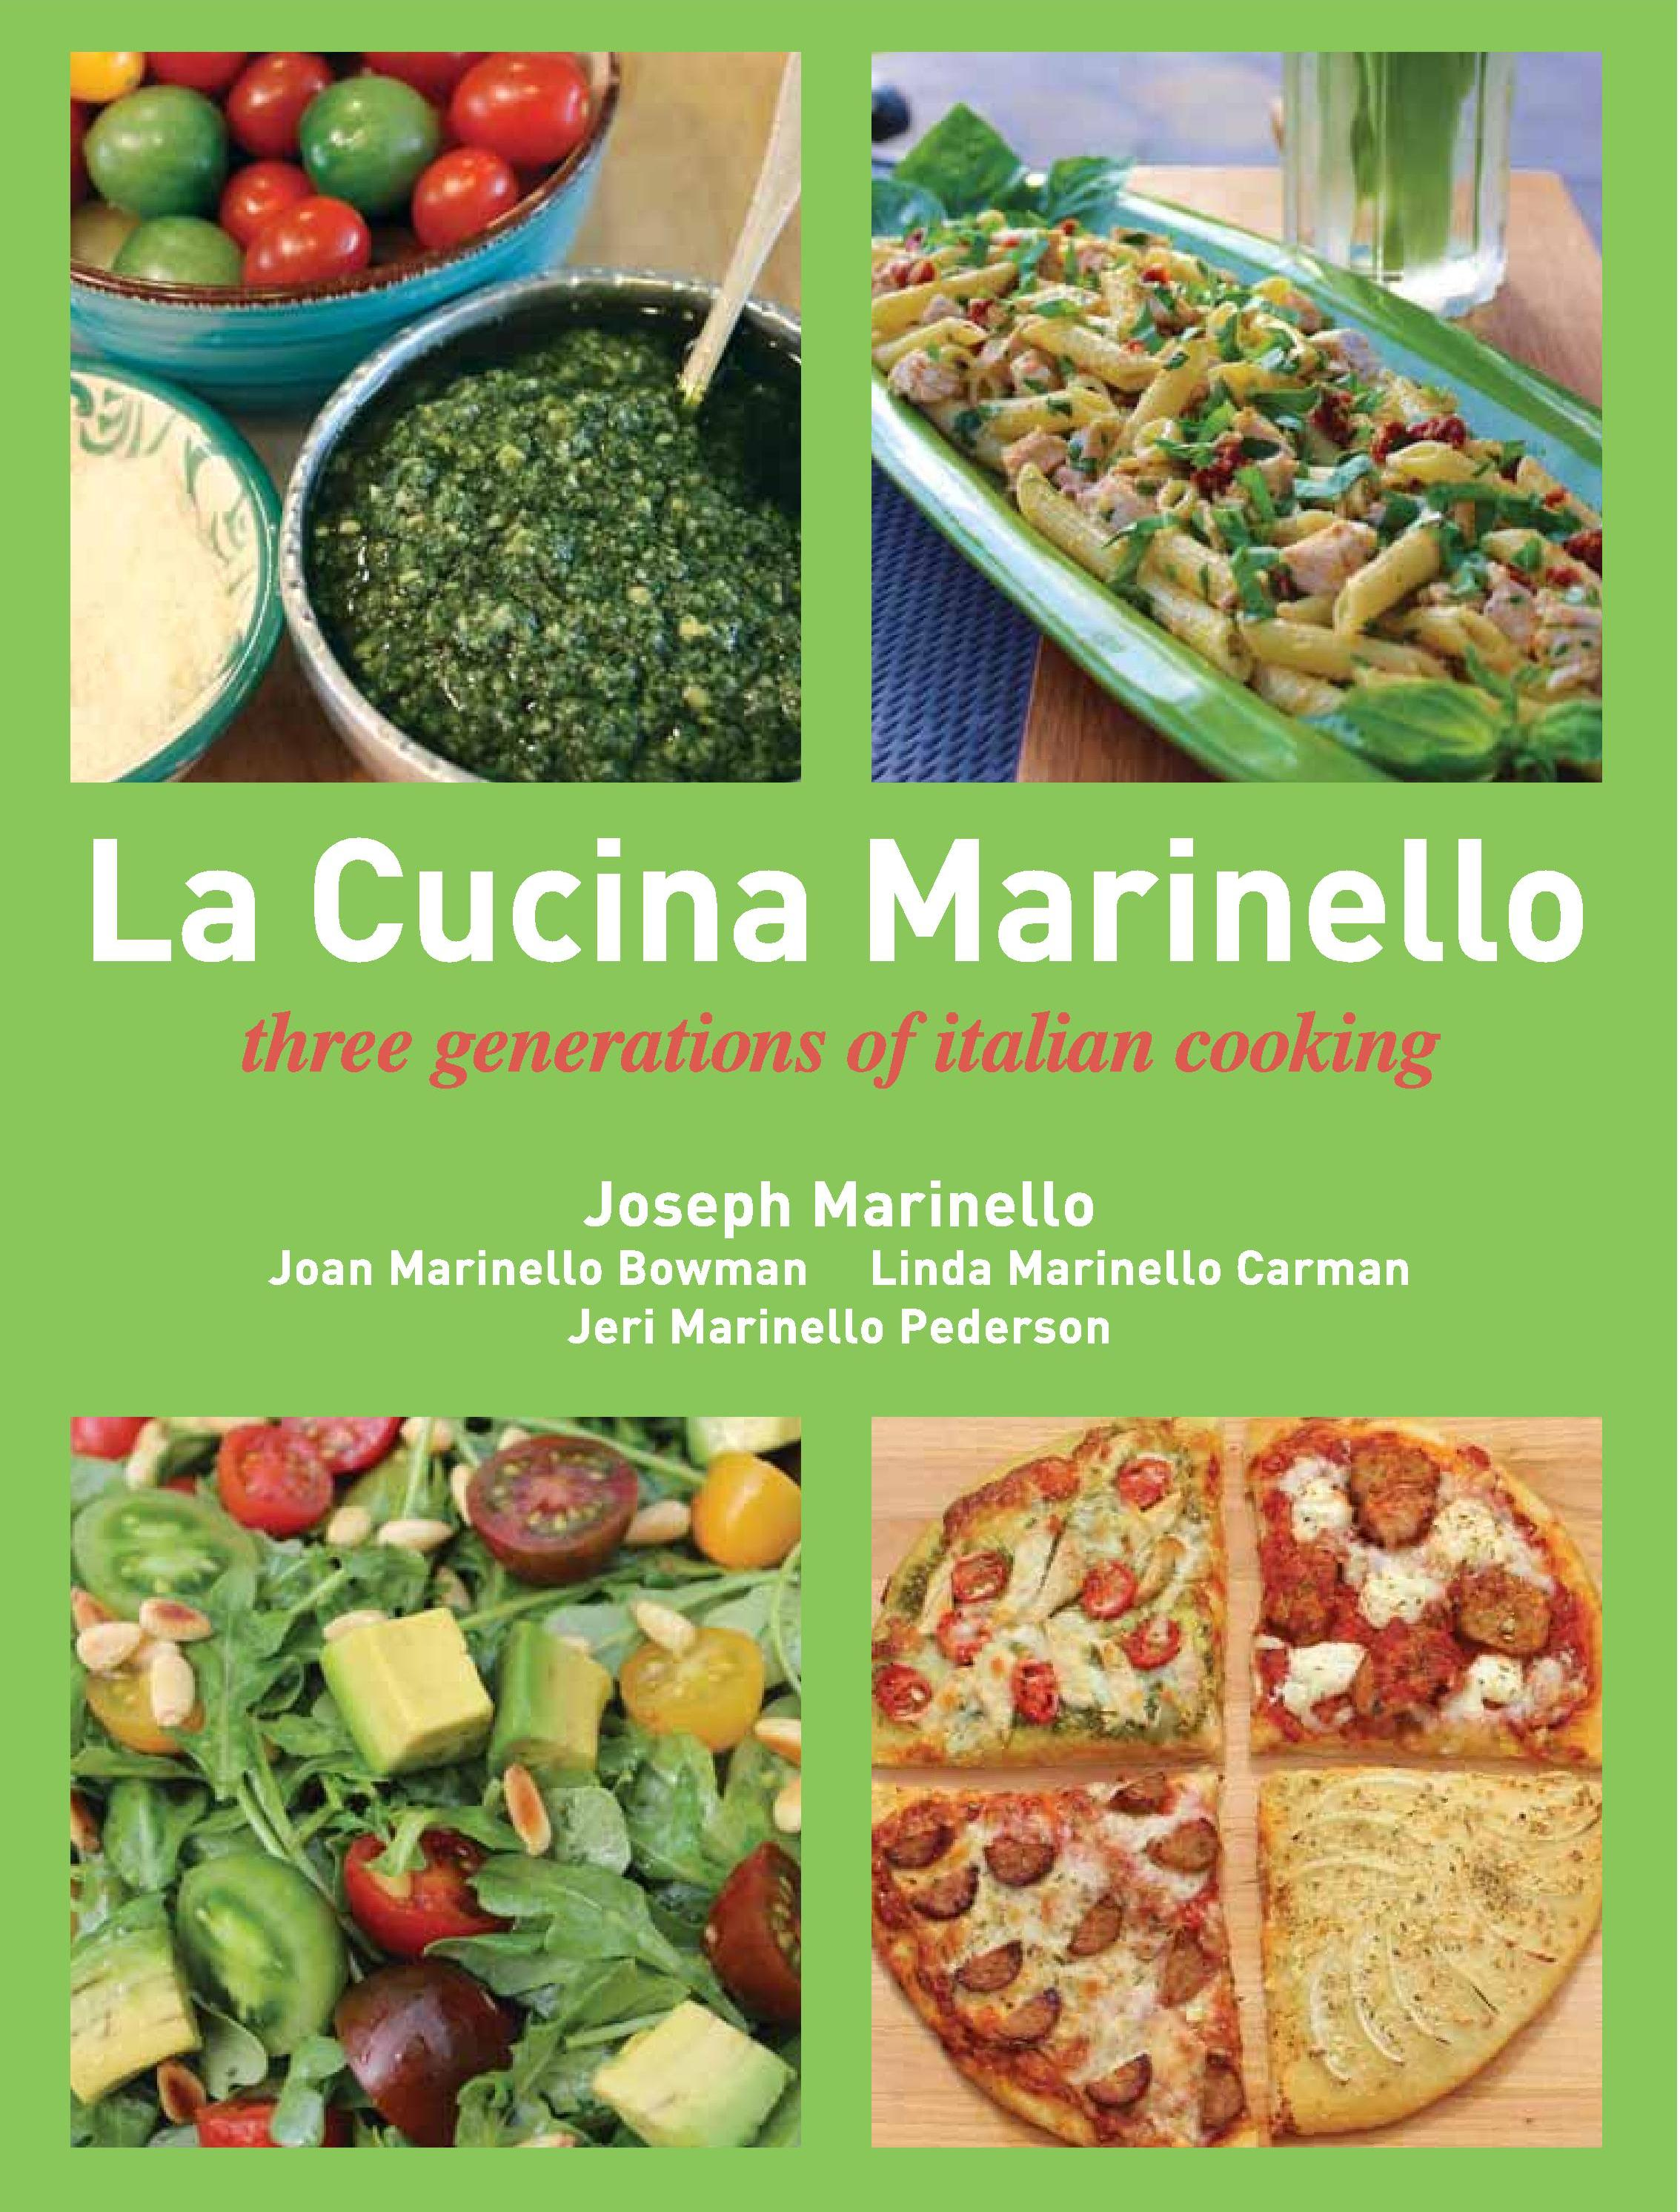 LaCucina-Marinello-FrontCover-page-001